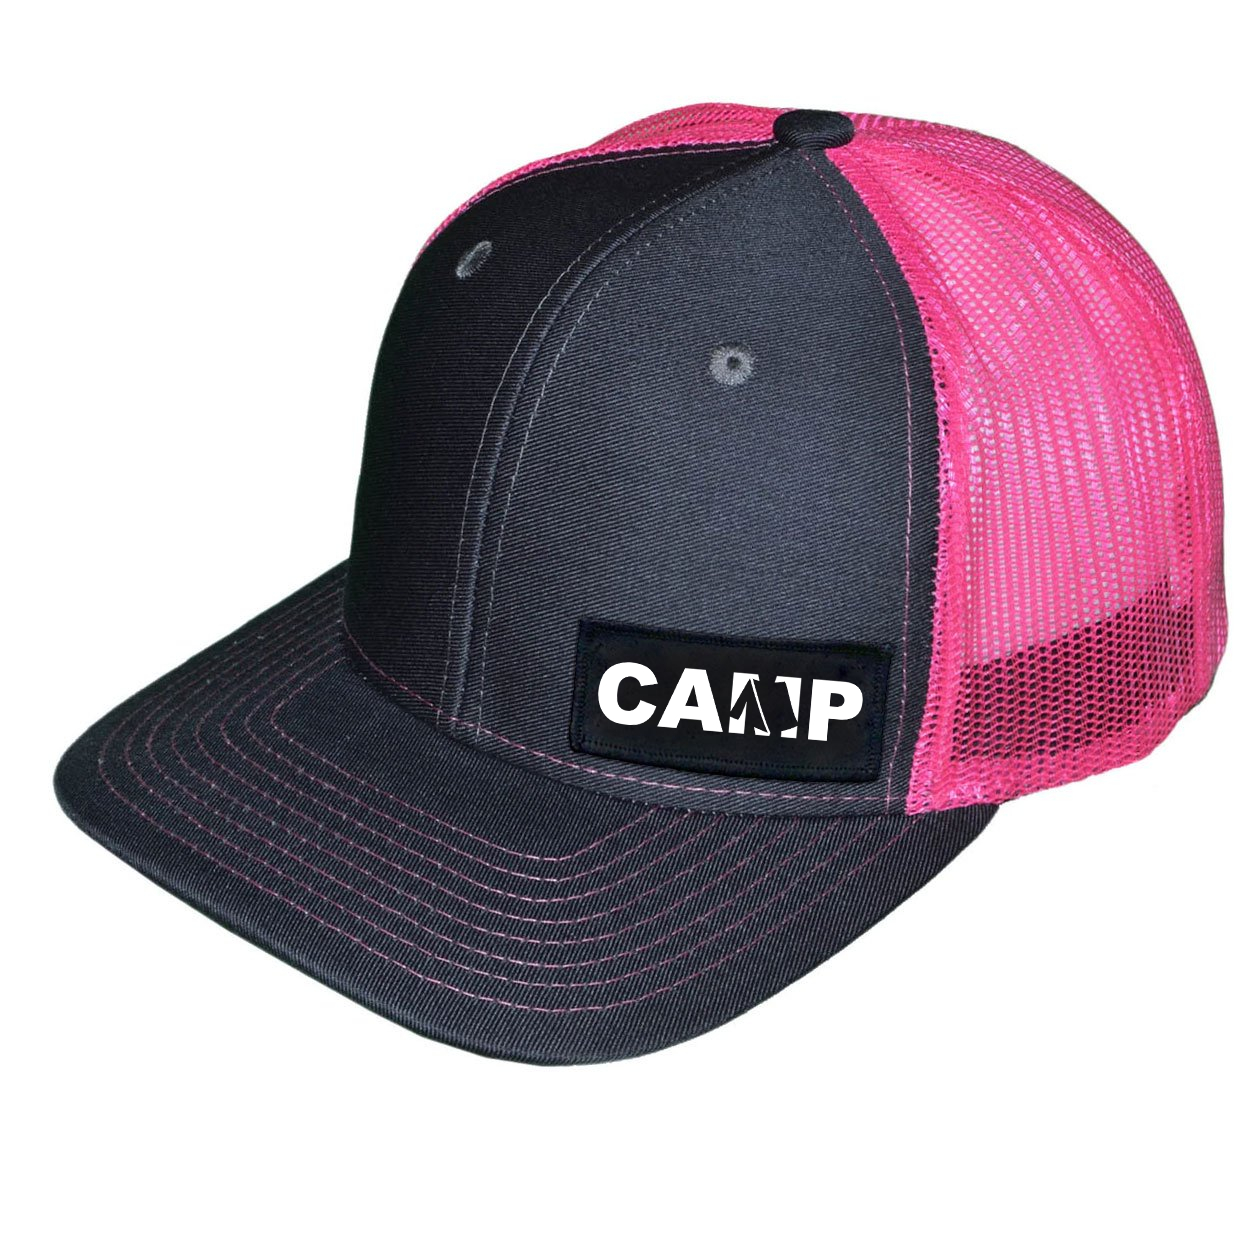 Camp Tent Logo Night Out Woven Patch Snapback Trucker Hat Dark Gray/Neon Pink (White Logo)